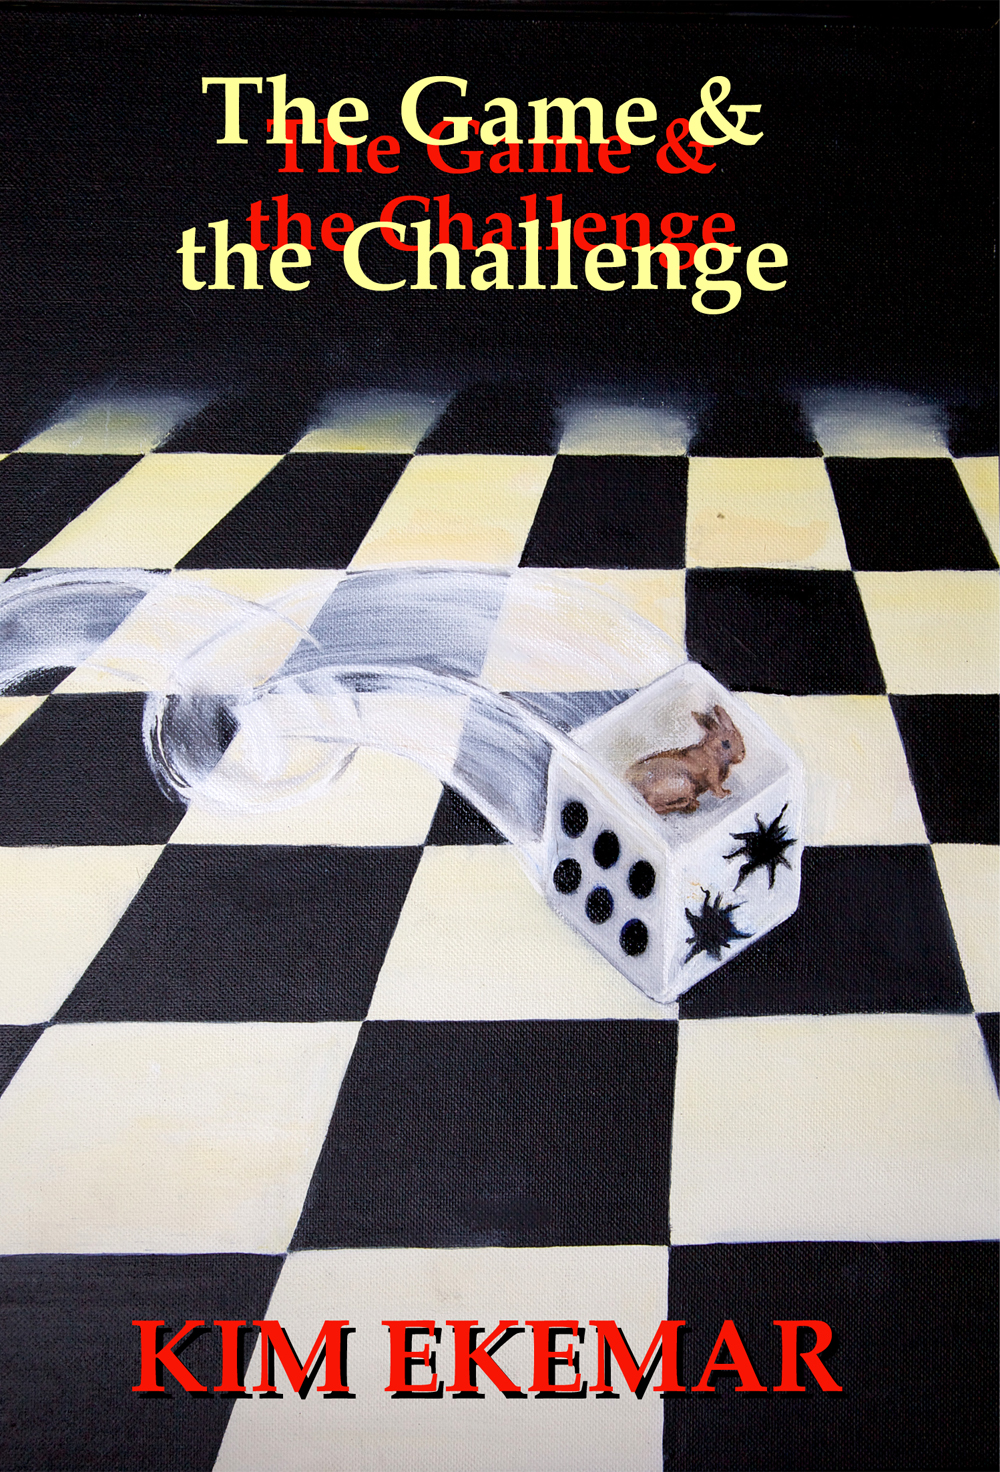 160624 The Game & the Challenge.jpg